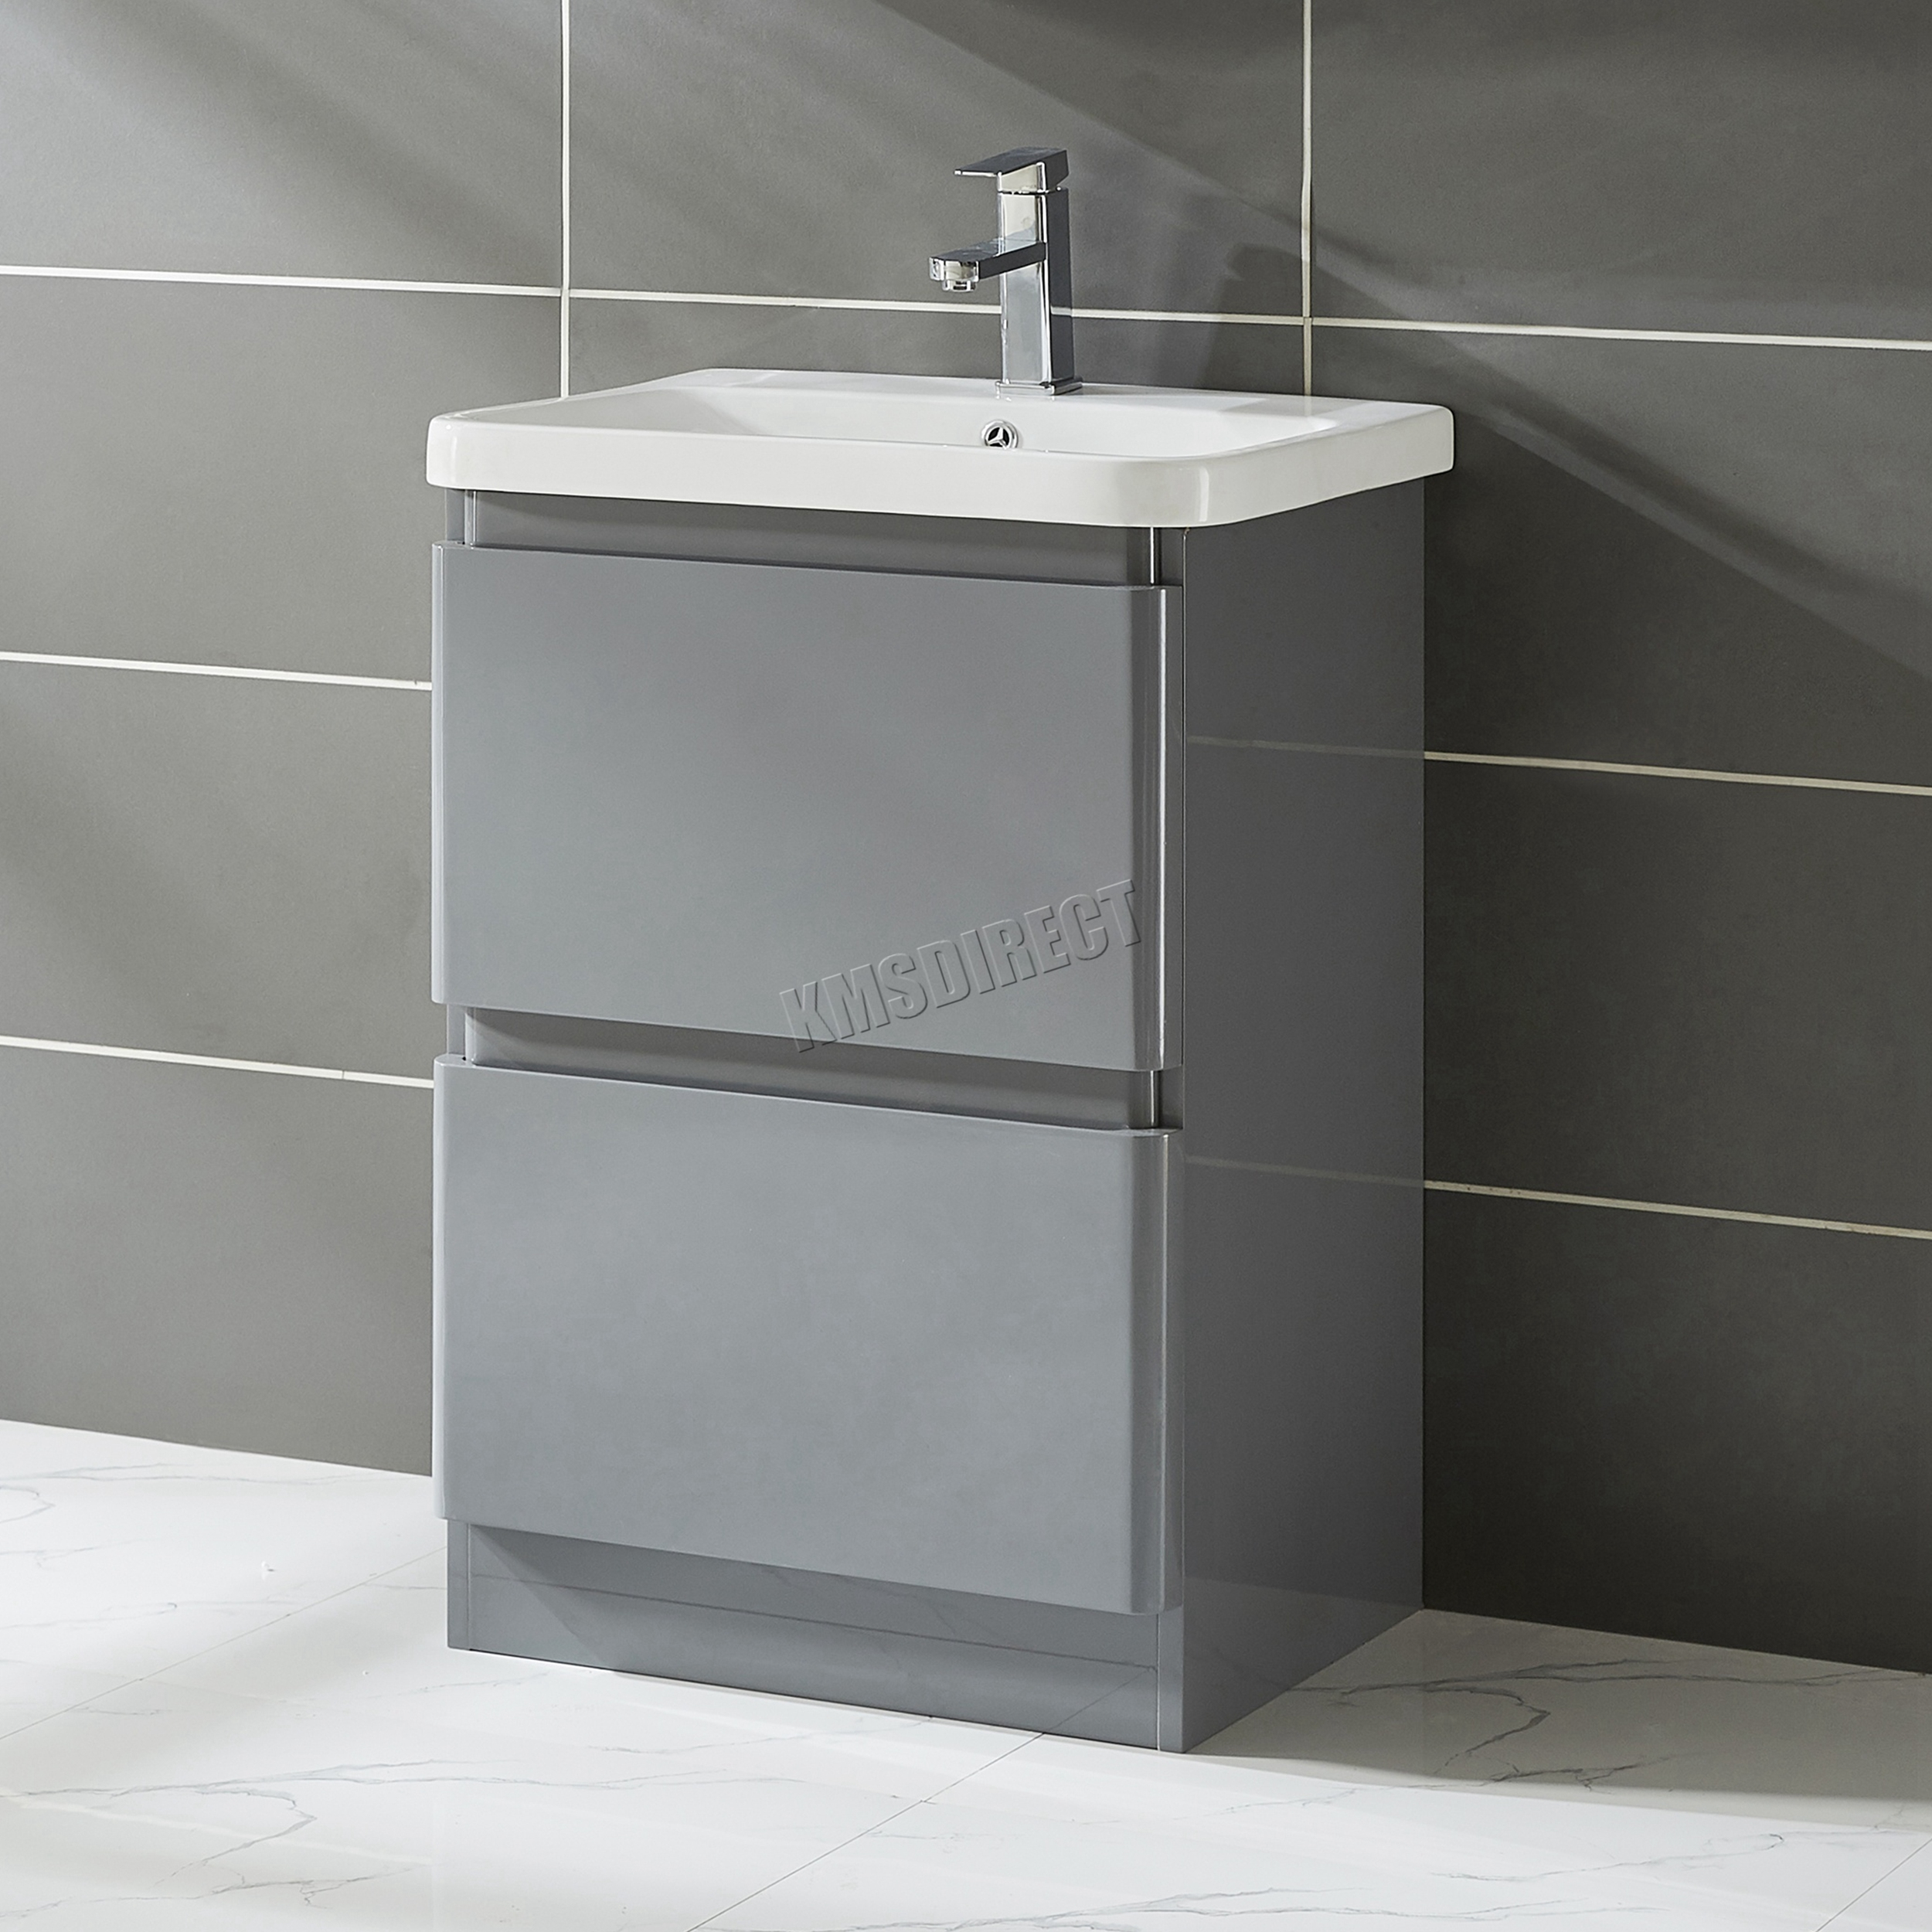 Foxhunter Vanity Unit Mdf High Gloss 2 Drawers Basin